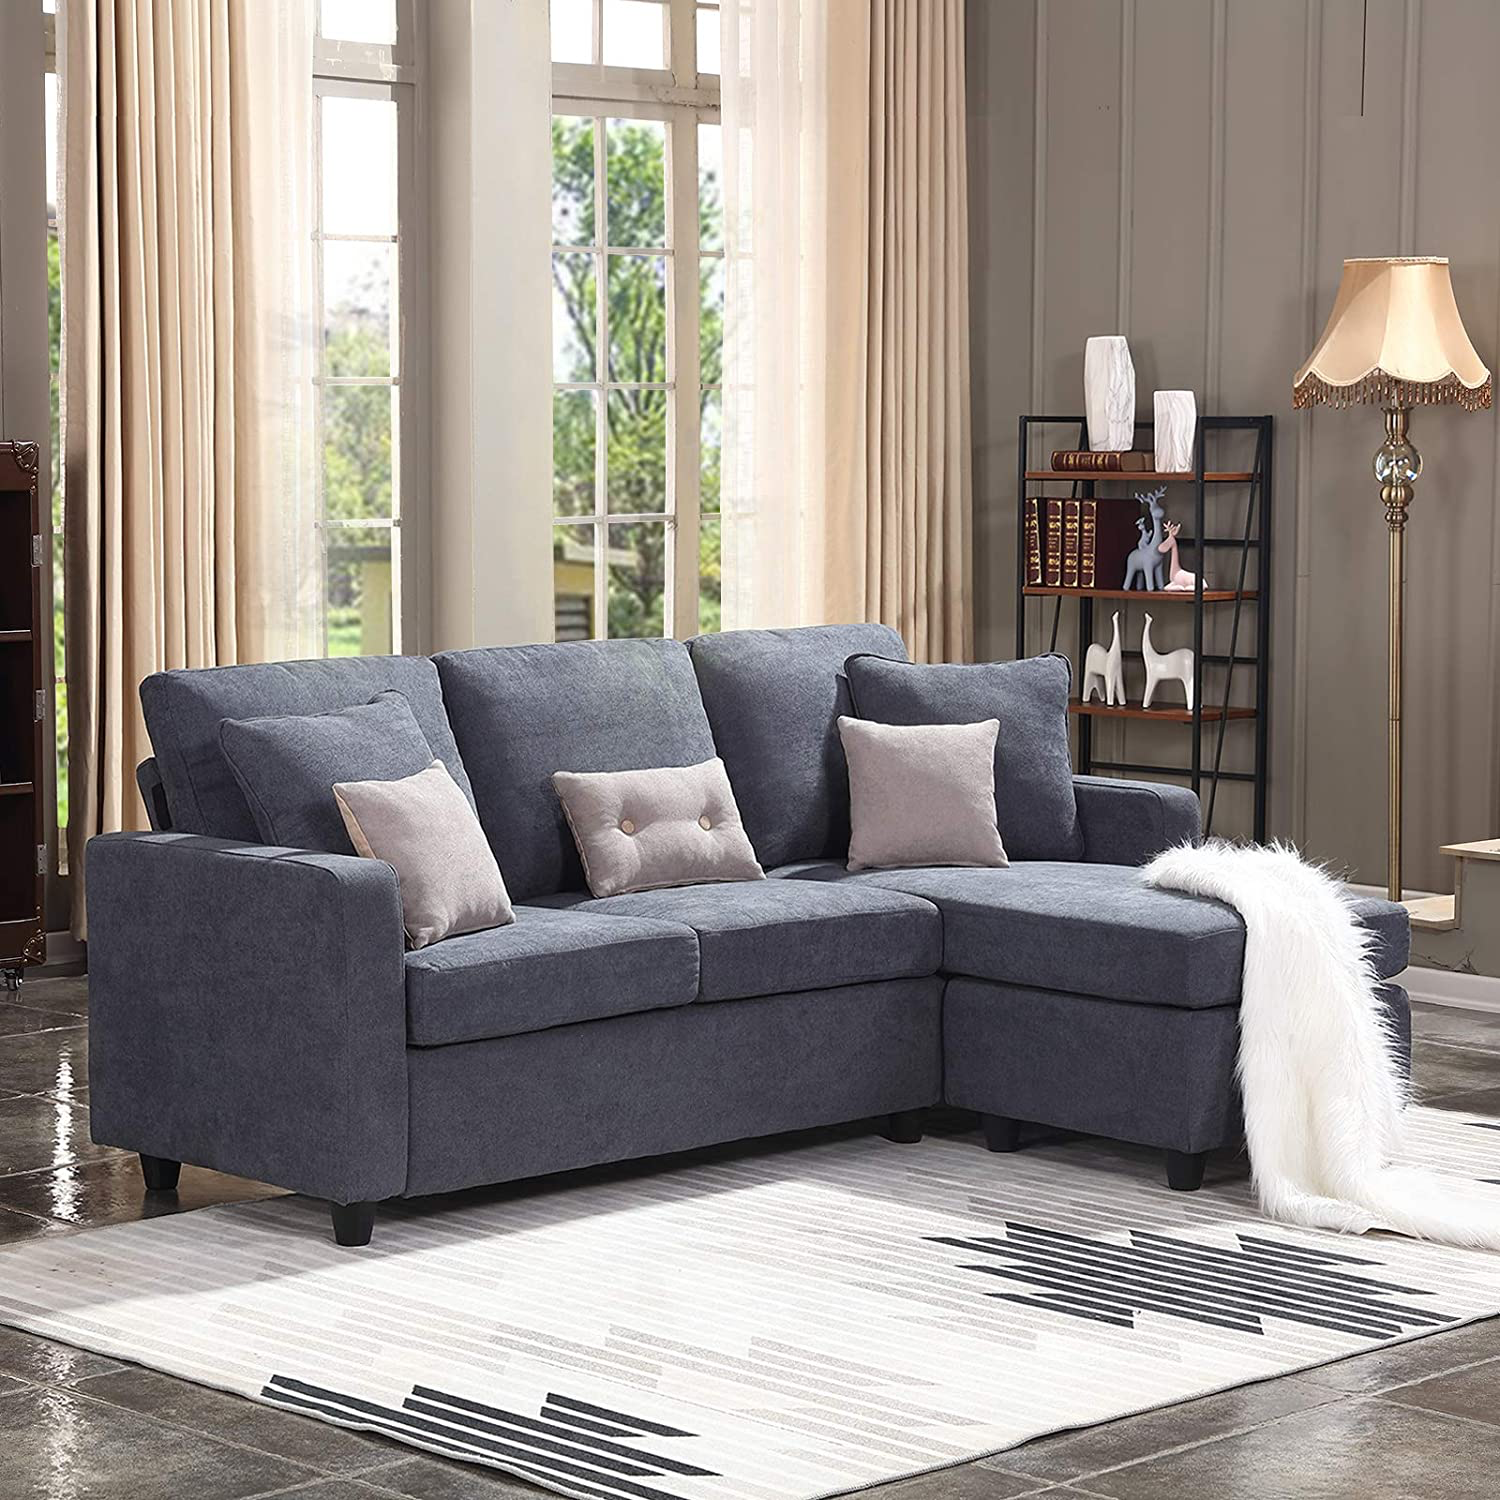 How to Measure a Sectional Sofa?